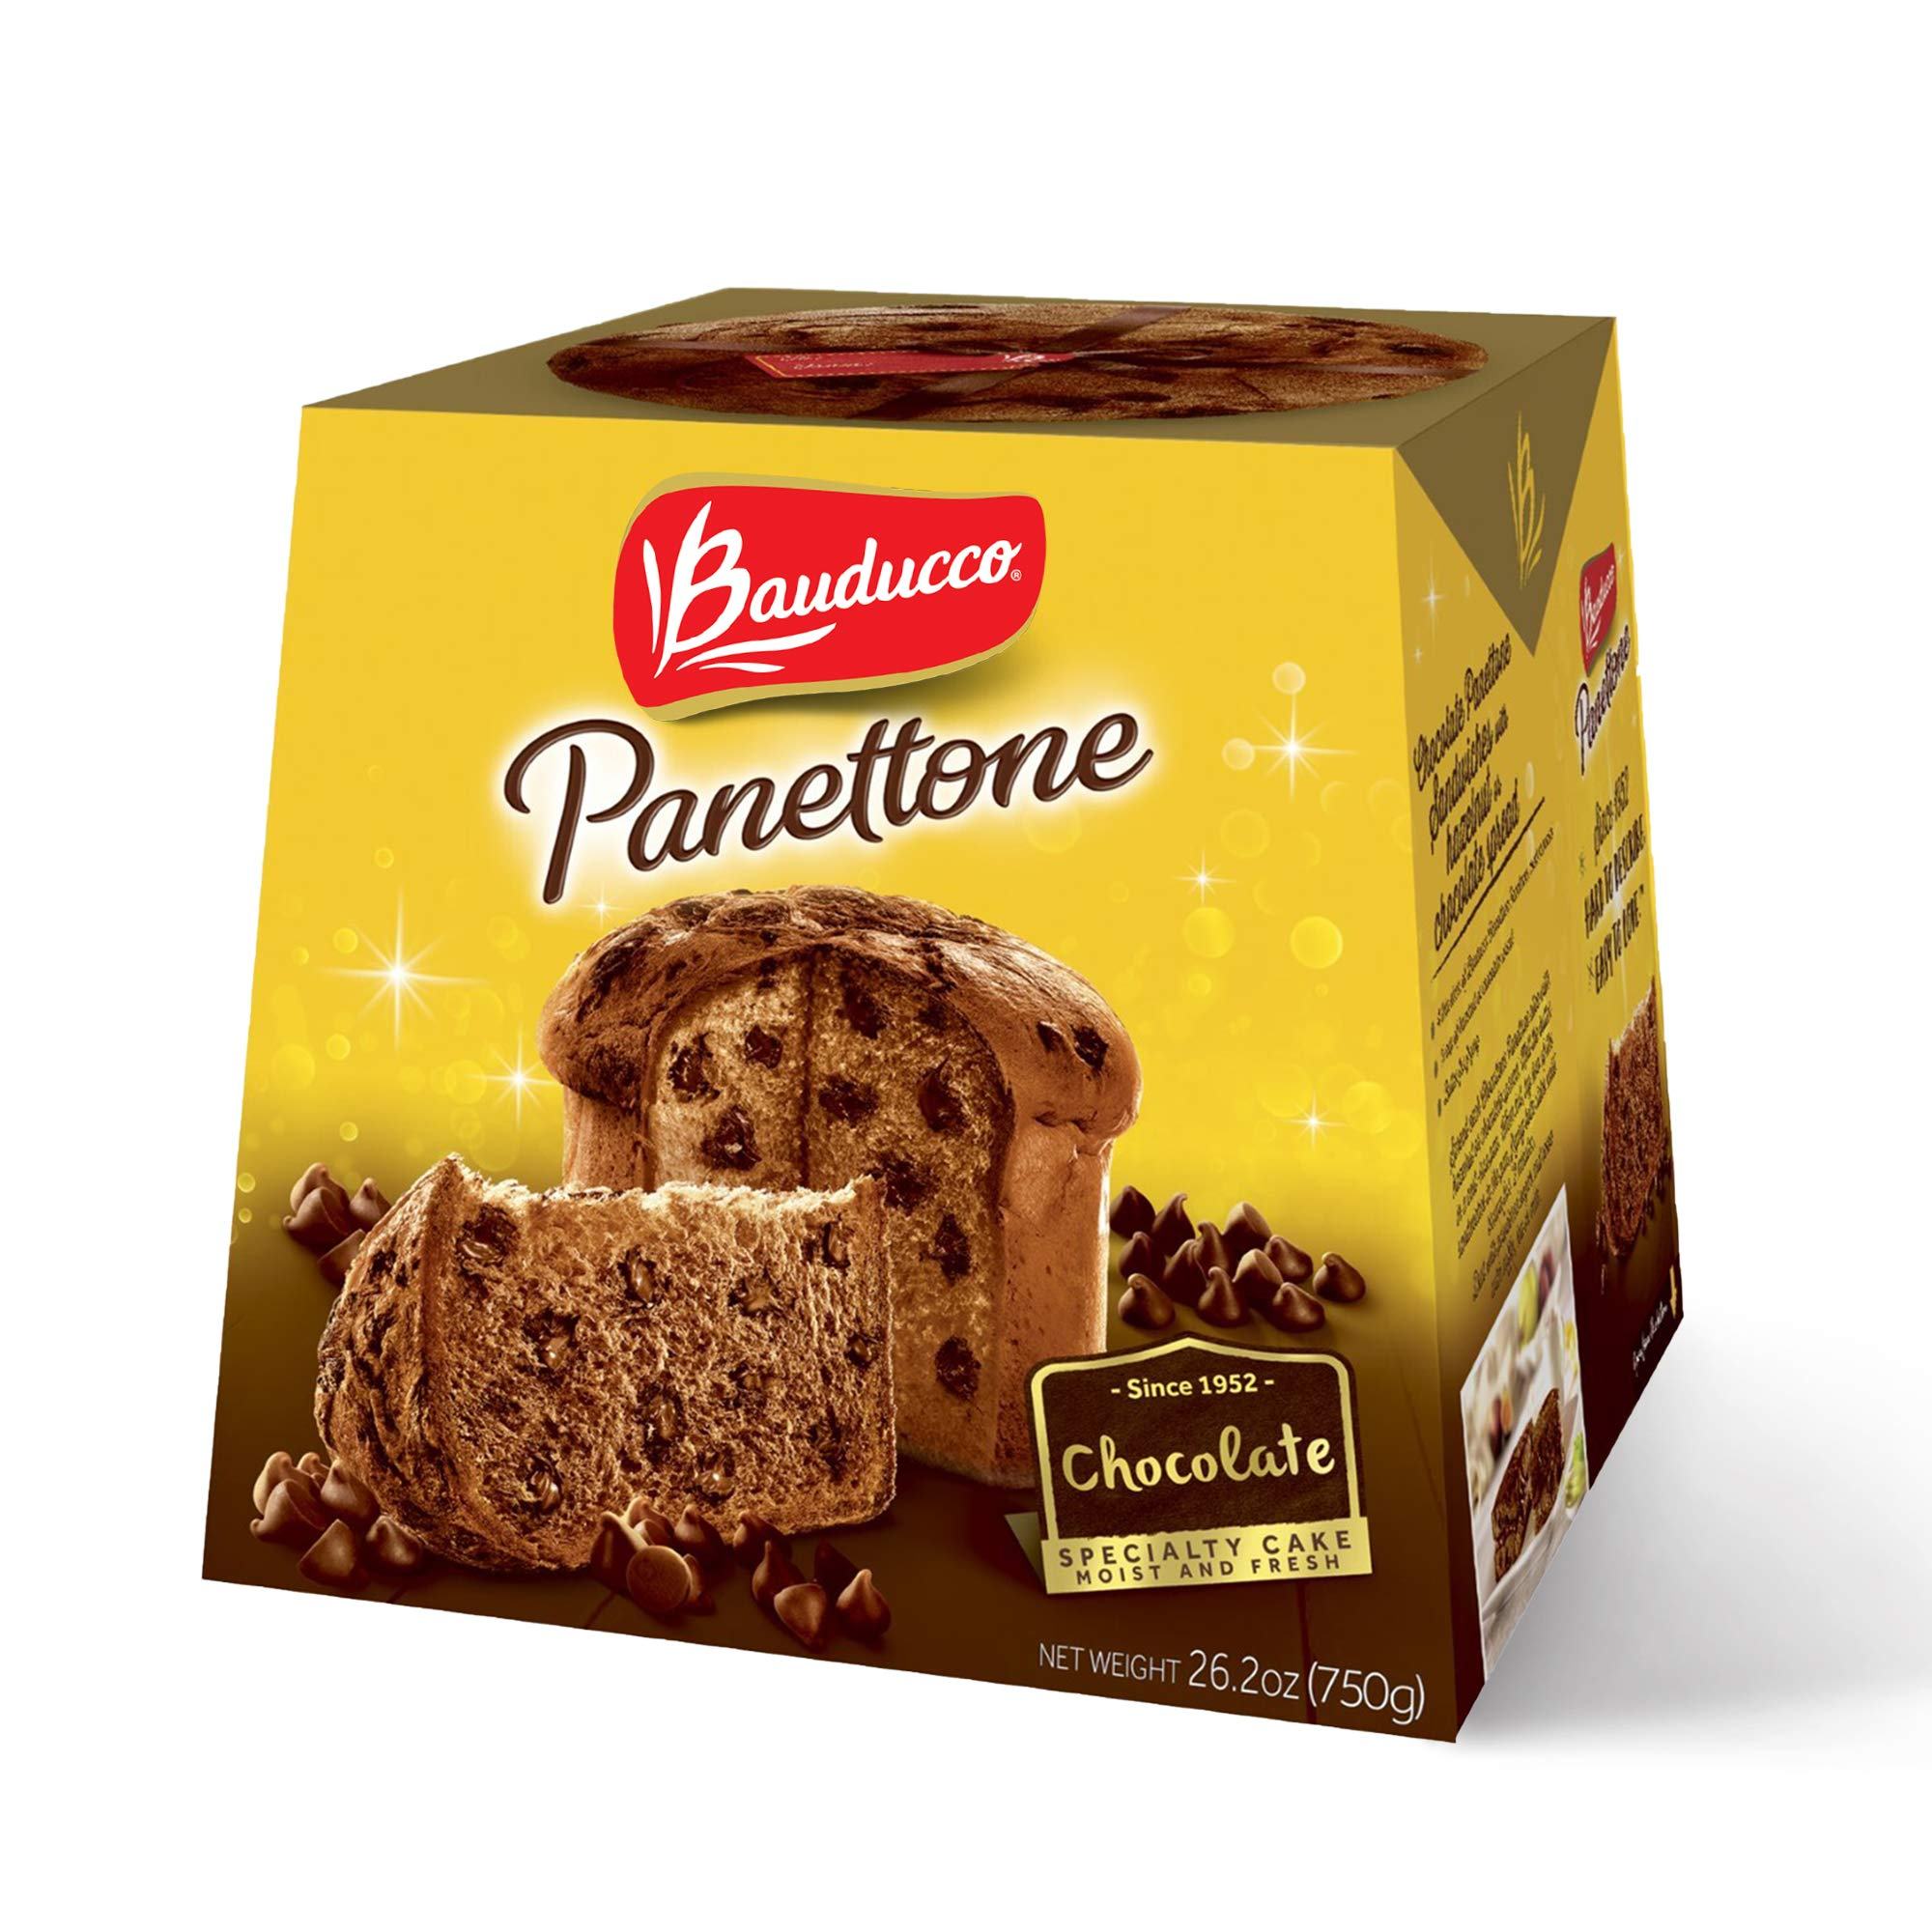 Bauducco Panettone Chocolate, Moist & Fresh, Traditional Italian Recipe, Italian Traditional Holiday Cake, 26.2oz